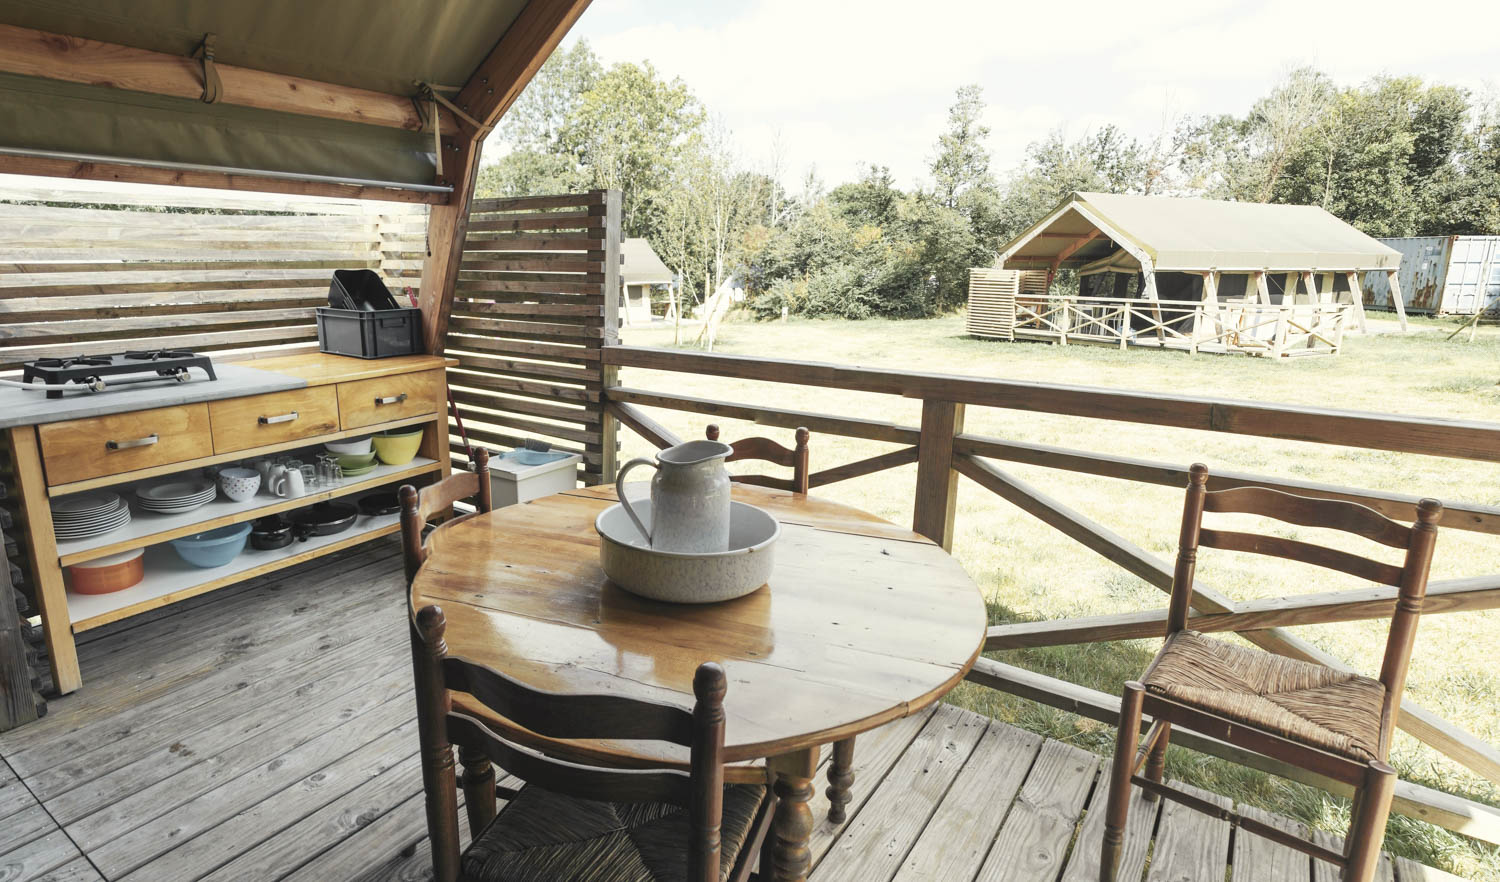 View from the Safari tent with has a nice intimacy and is equipped with all the necessary utensils and tableware.